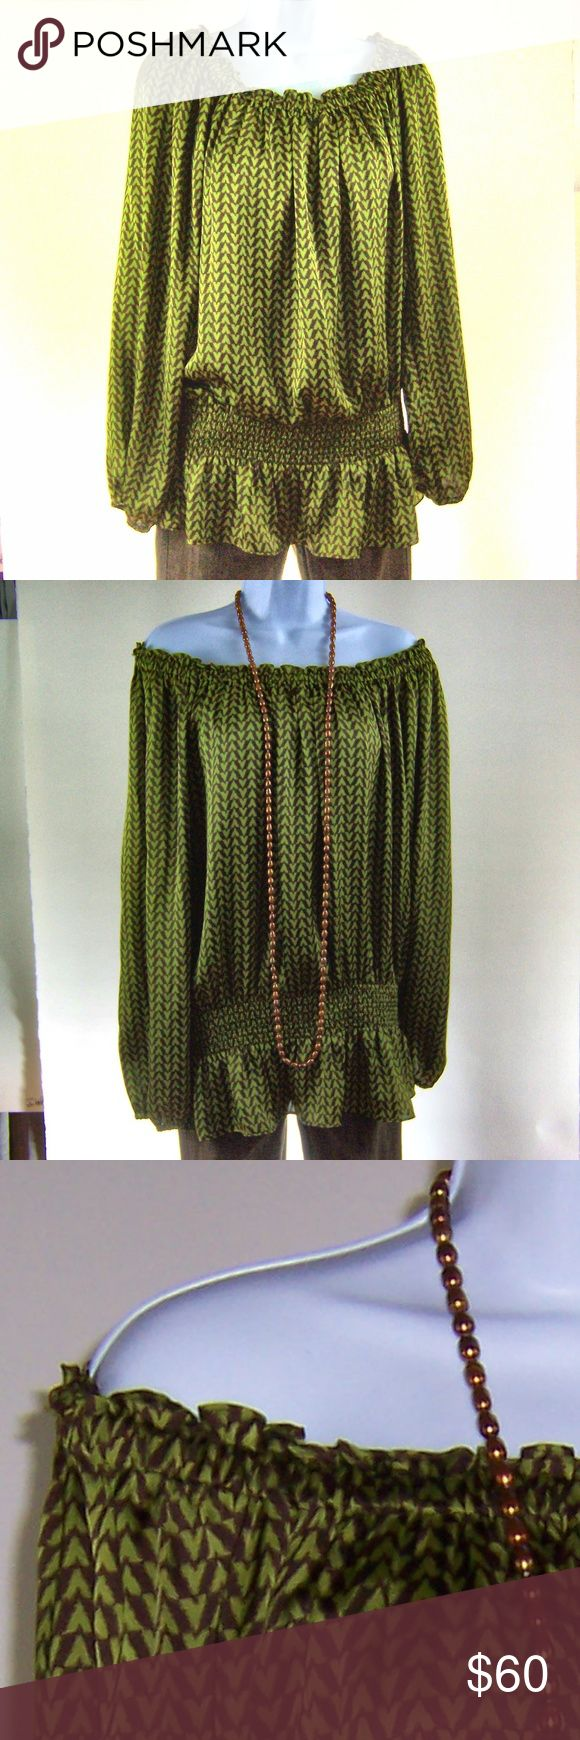 MICHAEL KORS Green Brown Smocked Shirt Women's 1X We are offering a beautiful pullover blouse by Michael Kors. Bohemian styling in avocado green and brown, smocked waist, Women's Plus 1X, in excellent condition. Elastic neckline, machine washable polyester. Very flexible shirt, dress it up or down.  #michaelkors #kors #ilovemichaelkors  #bohemian #avocado #smocking #smockedwaist KORS Michael Kors Tops Blouses